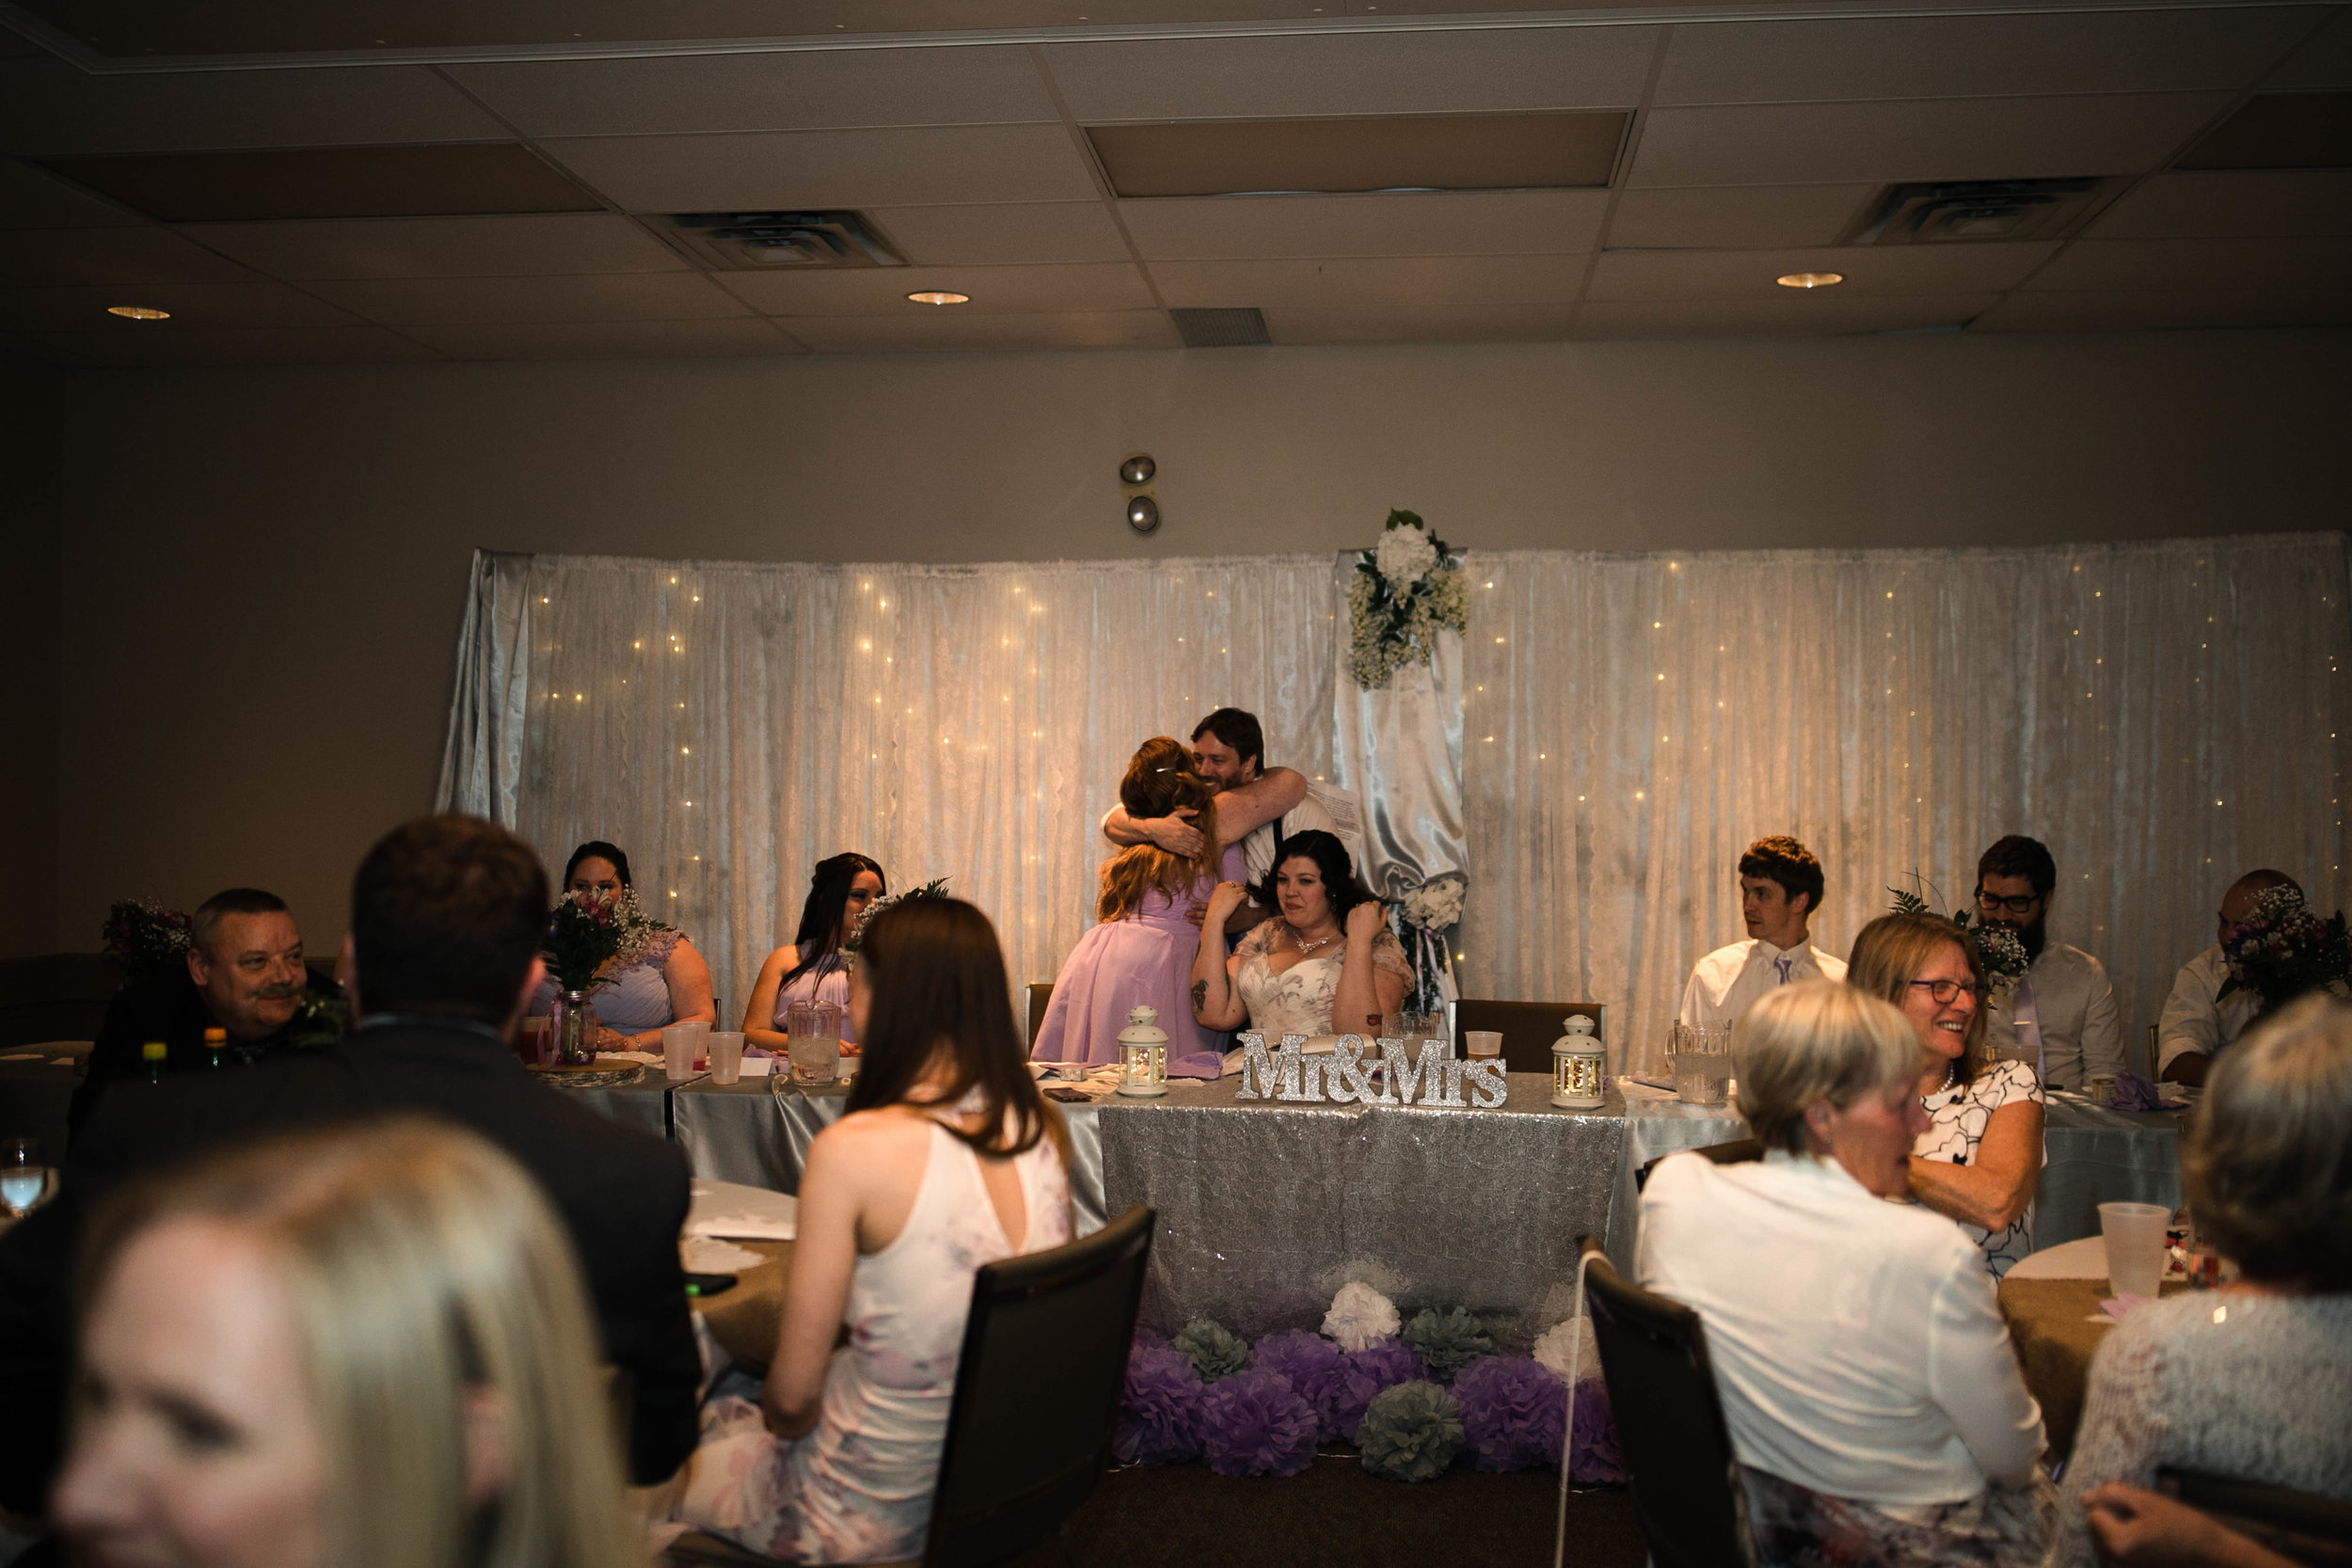 CrystalJessuppeterboroughwedding (72 of 79).jpg